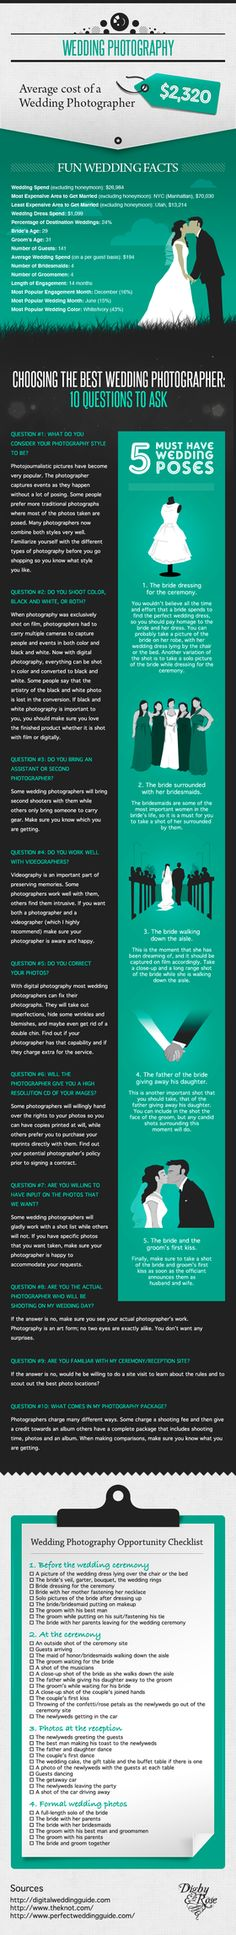 ★♥★ Complete #Guide to Choosing and hiring a Wedding #Photographer ★♥★ A great #infographic for all the #brides who want a guide to choosing a  wedding photographer. Includes top 10 questions you NEED to ask! #love  #bride #groom #tips #tricks #wedding #RSVP #proposal #internet #web  #media #network #App #gallery #Lifestyle